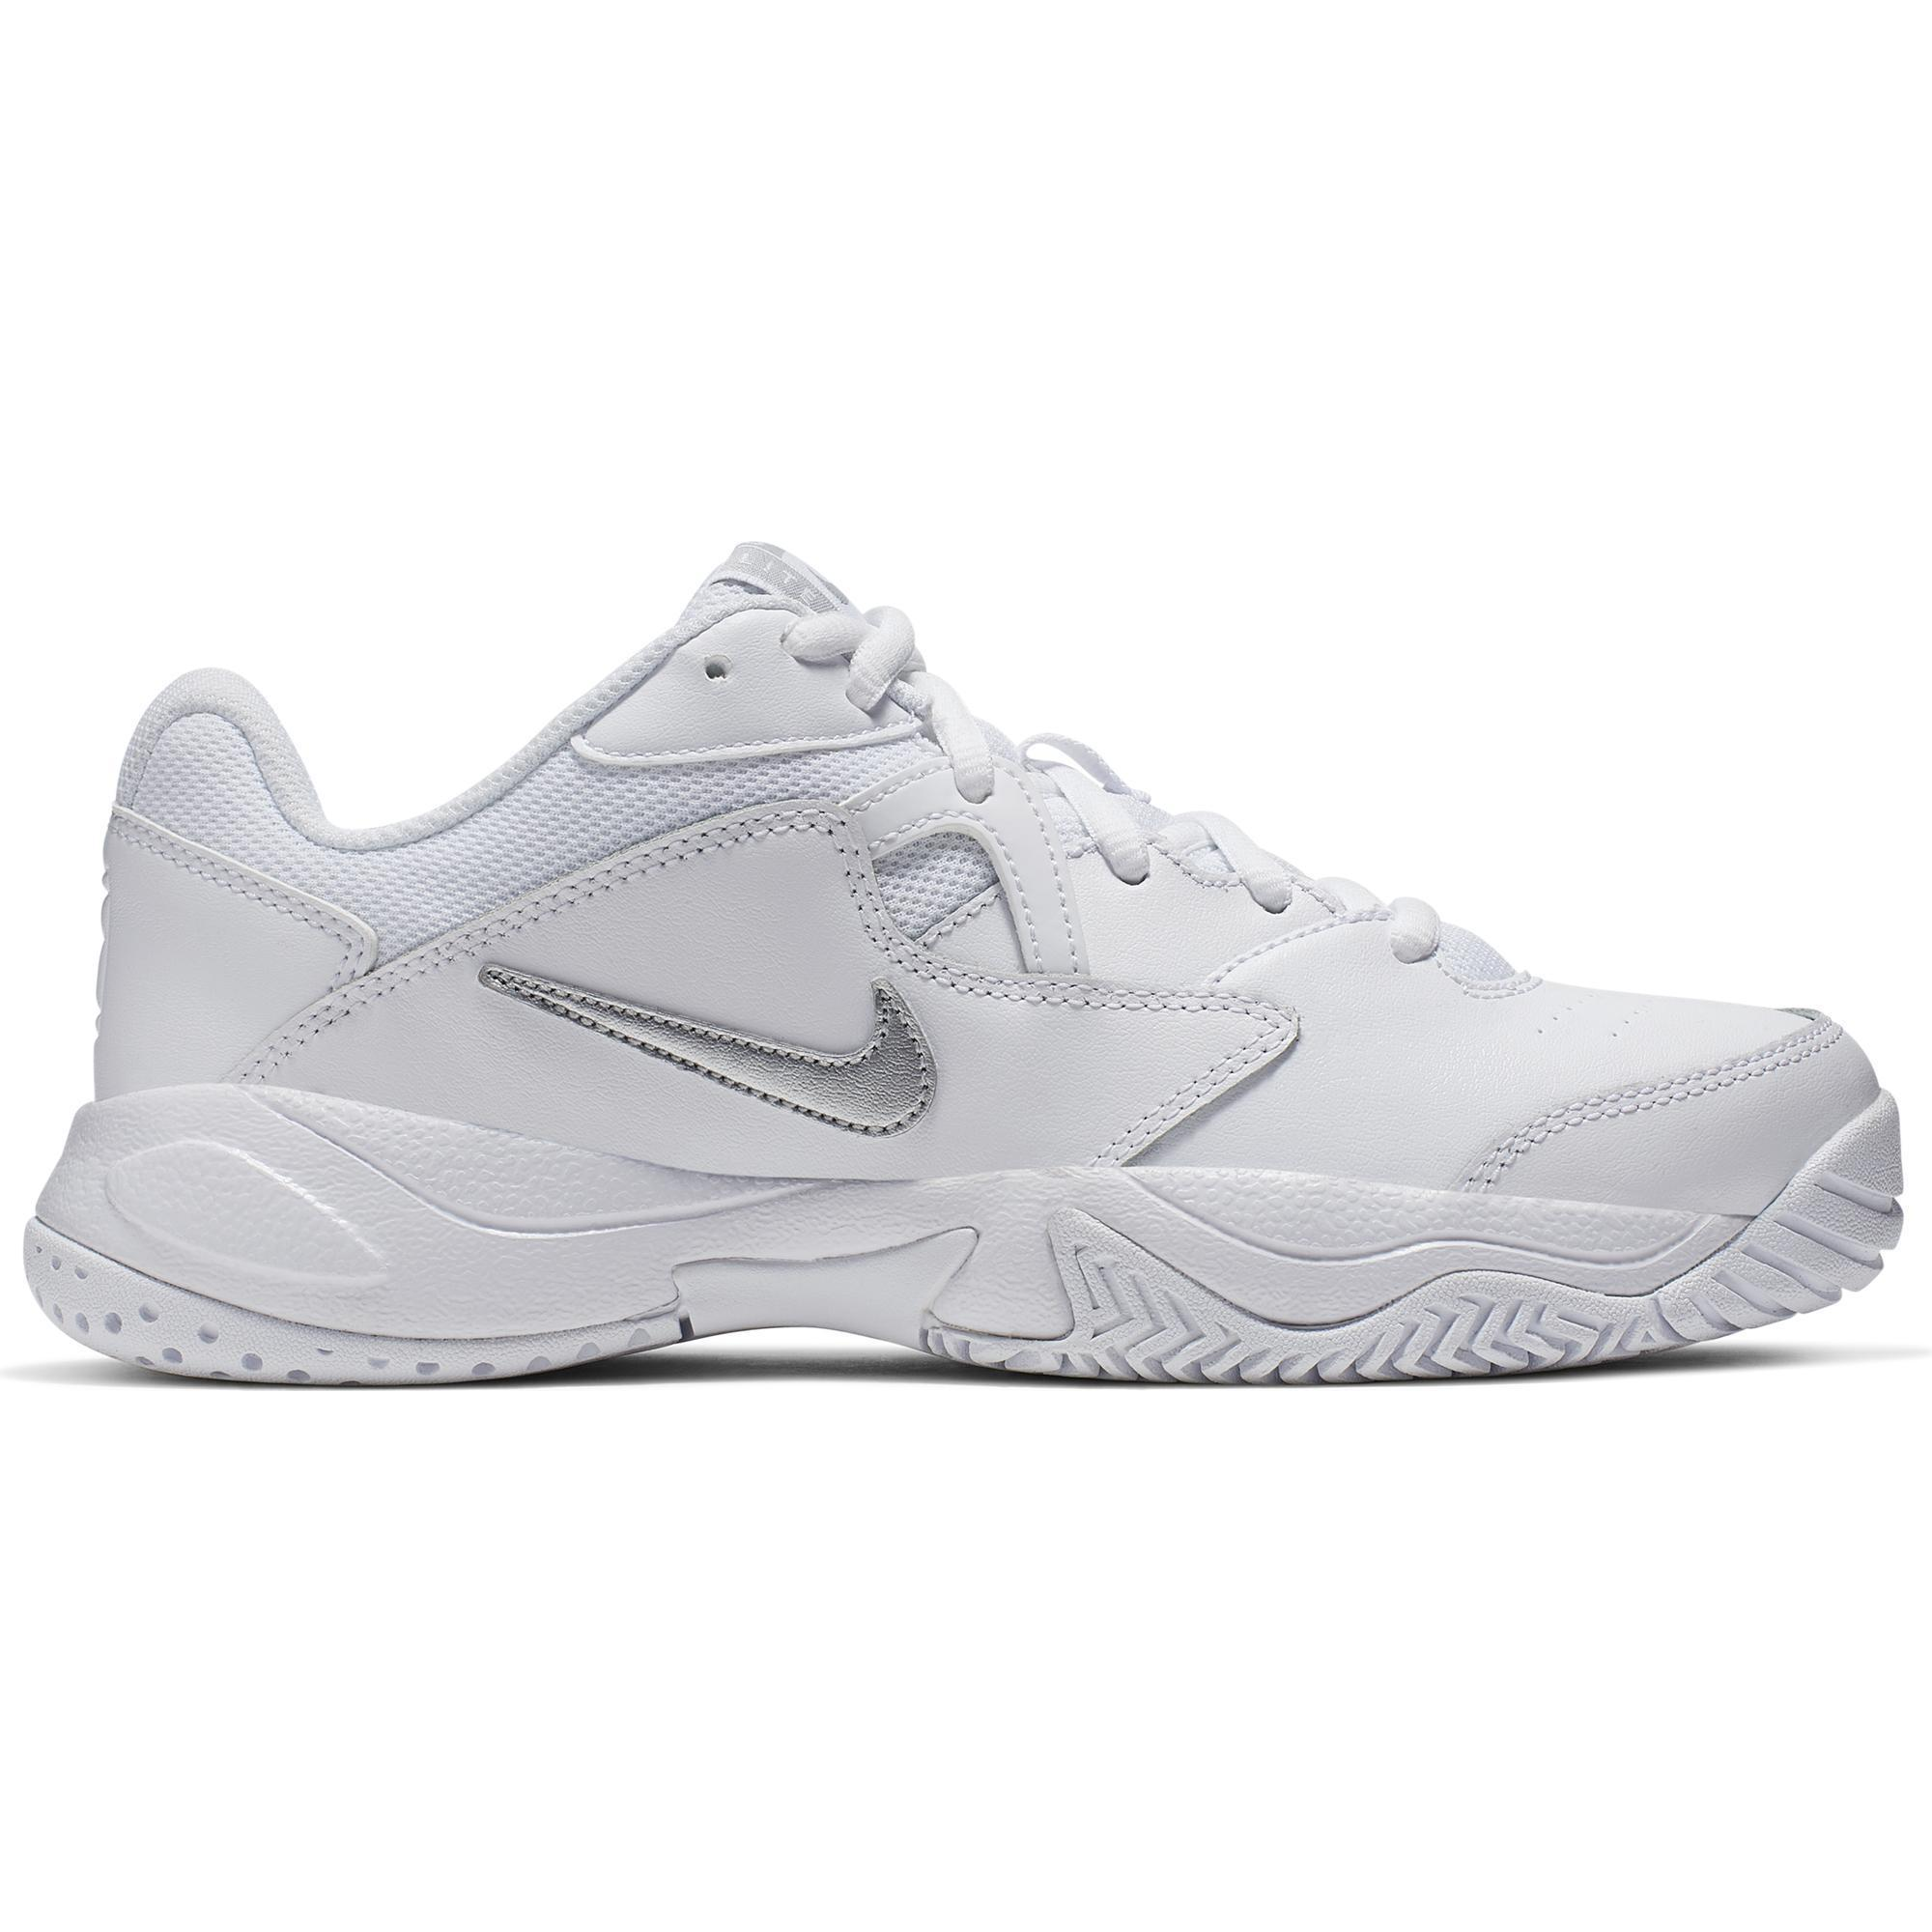 decathlon nike air force